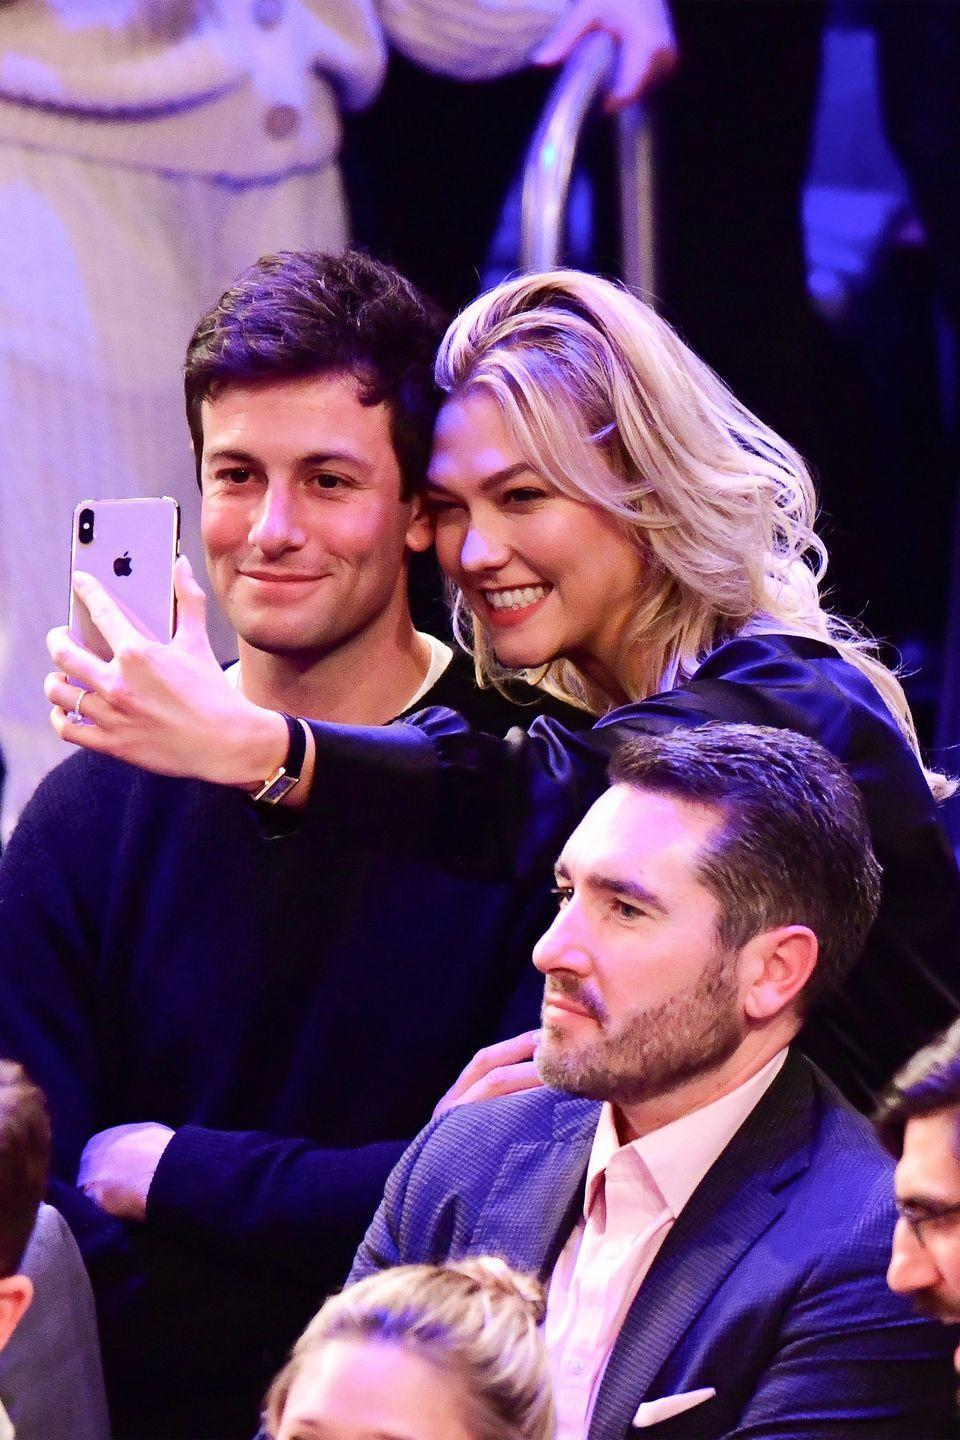 "<p>He's from the Kushner real estate dynasty and Karlie Kloss is the second highest-paid model of 2018, according to <em><a href=""https://www.harpersbazaar.com/fashion/models/a25574949/kendall-jenner-highest-paid-model-2018/"" rel=""nofollow noopener"" target=""_blank"" data-ylk=""slk:Forbes"" class=""link rapid-noclick-resp"">Forbes</a></em>. The relatively low-key couple tied the knot in an <a href=""https://www.harpersbazaar.com/celebrity/latest/a23908534/karlie-kloss-marries-joshua-kushner/"" rel=""nofollow noopener"" target=""_blank"" data-ylk=""slk:intimate wedding"" class=""link rapid-noclick-resp"">intimate wedding</a> in the forest in 2018. </p>"